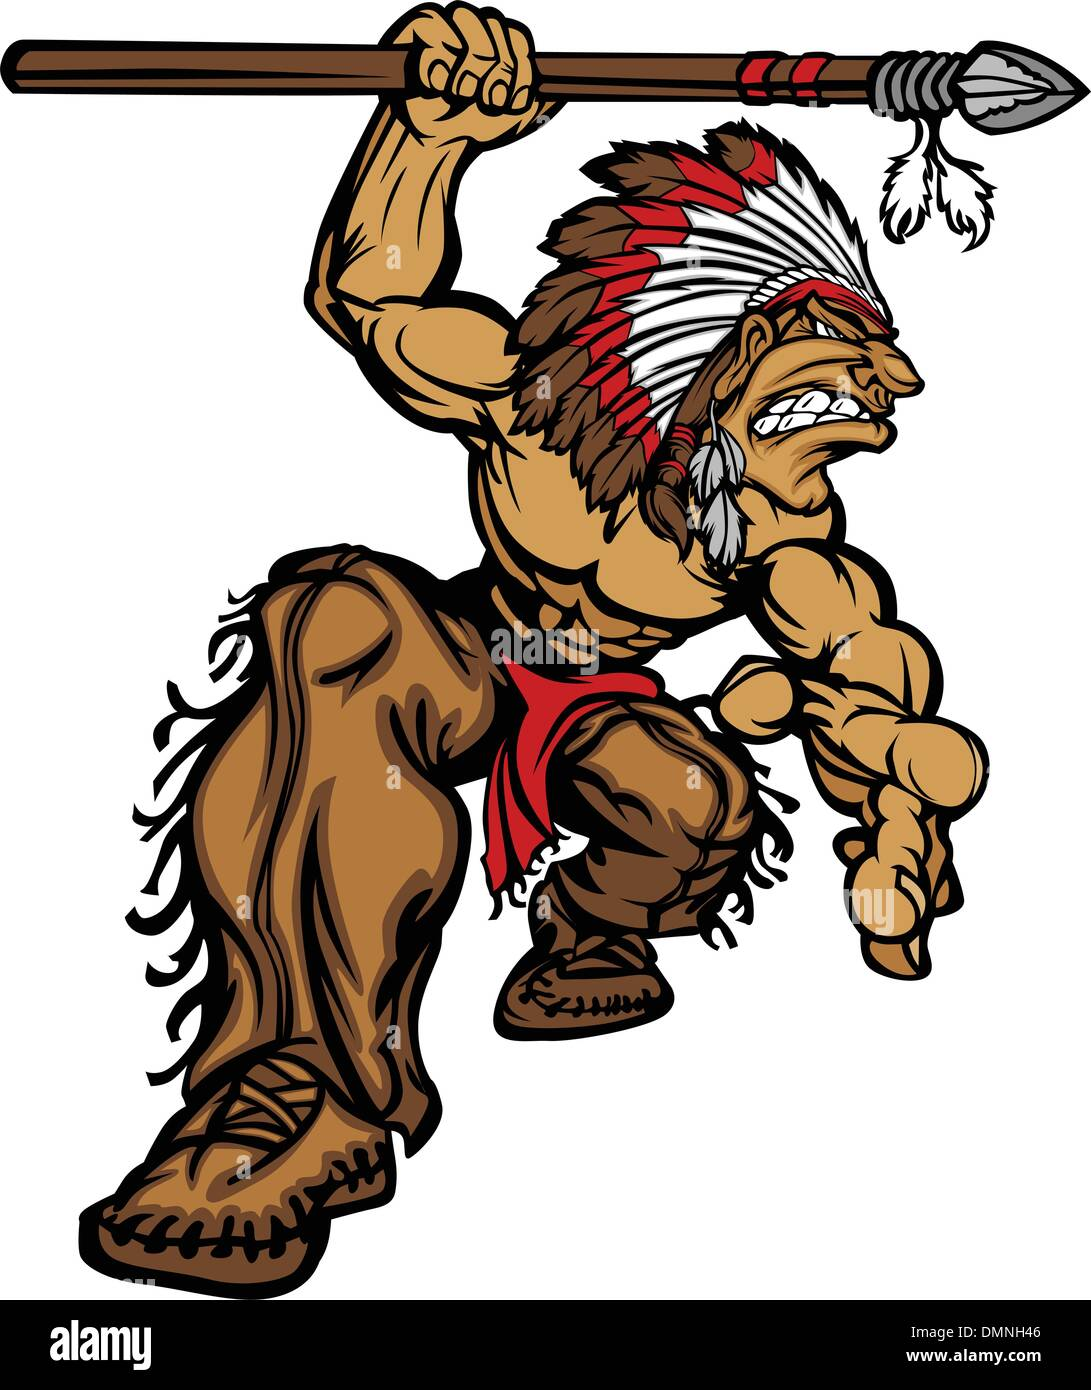 Indian Chief Mascot with Spear and Headdress Vector Illustration - Stock Image